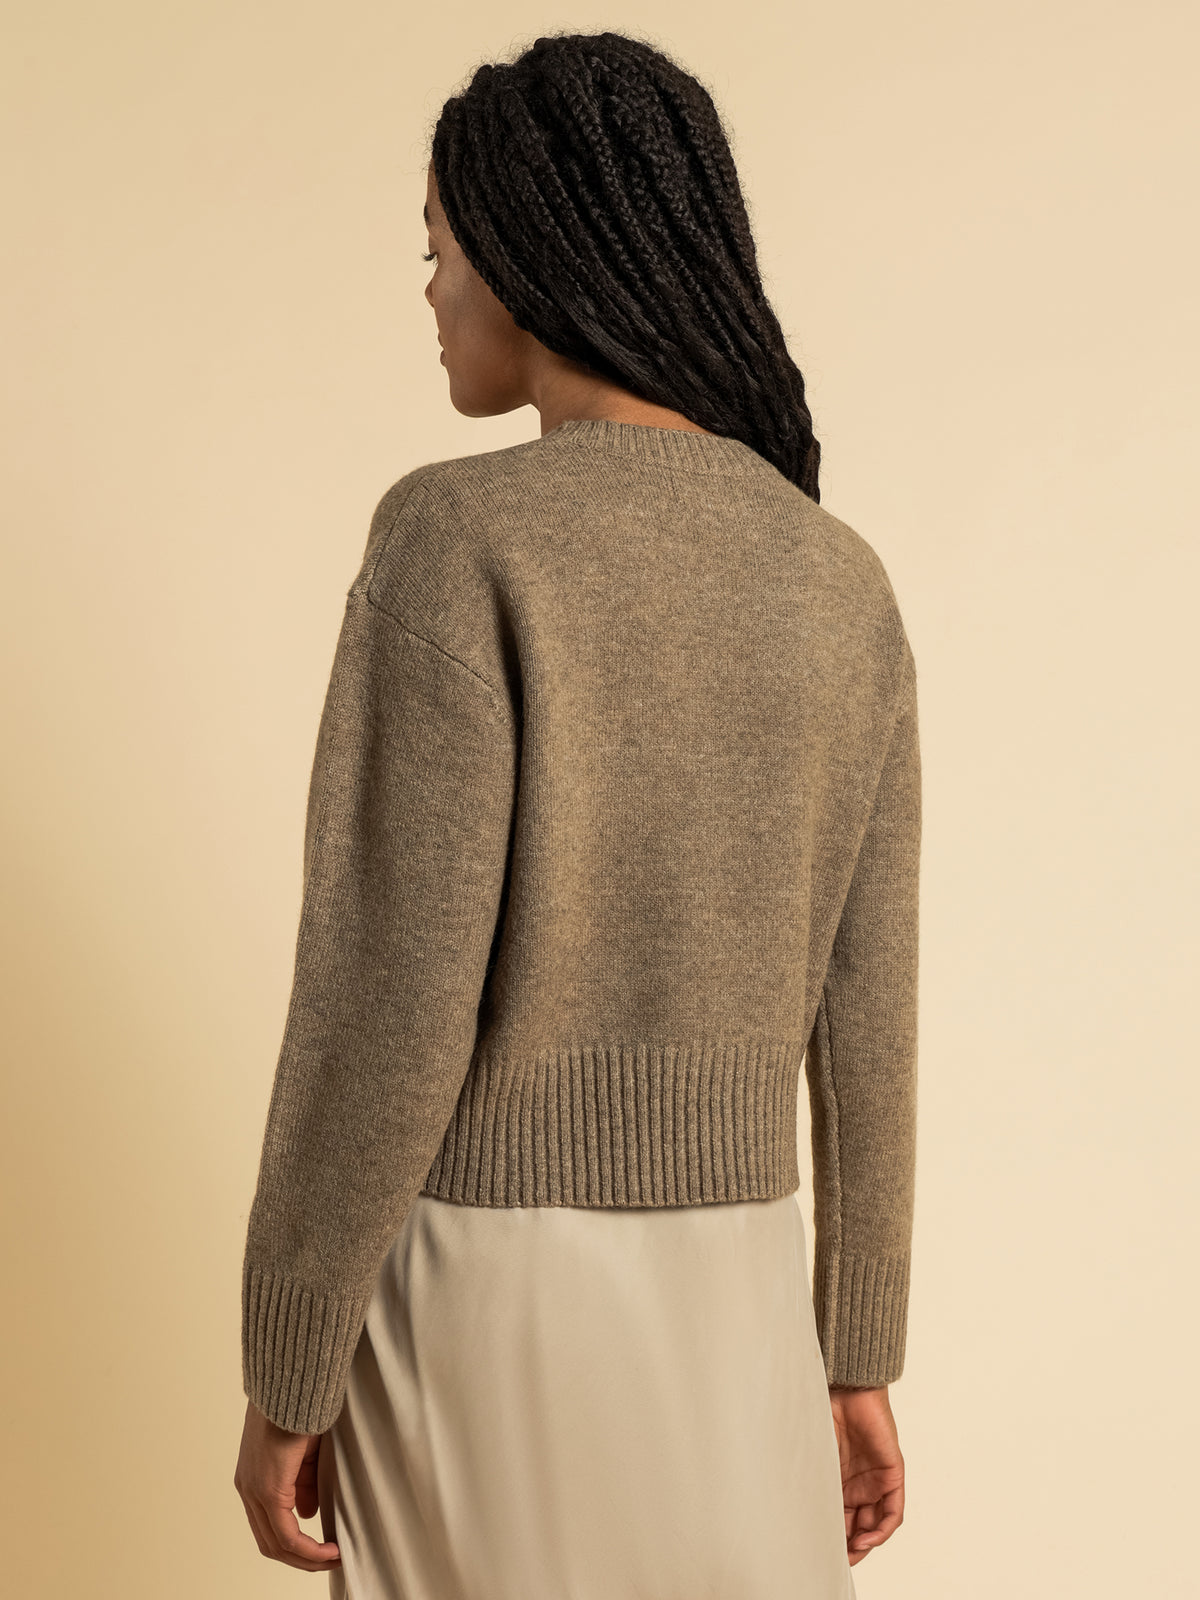 Ari Knit Jumper in Mocha